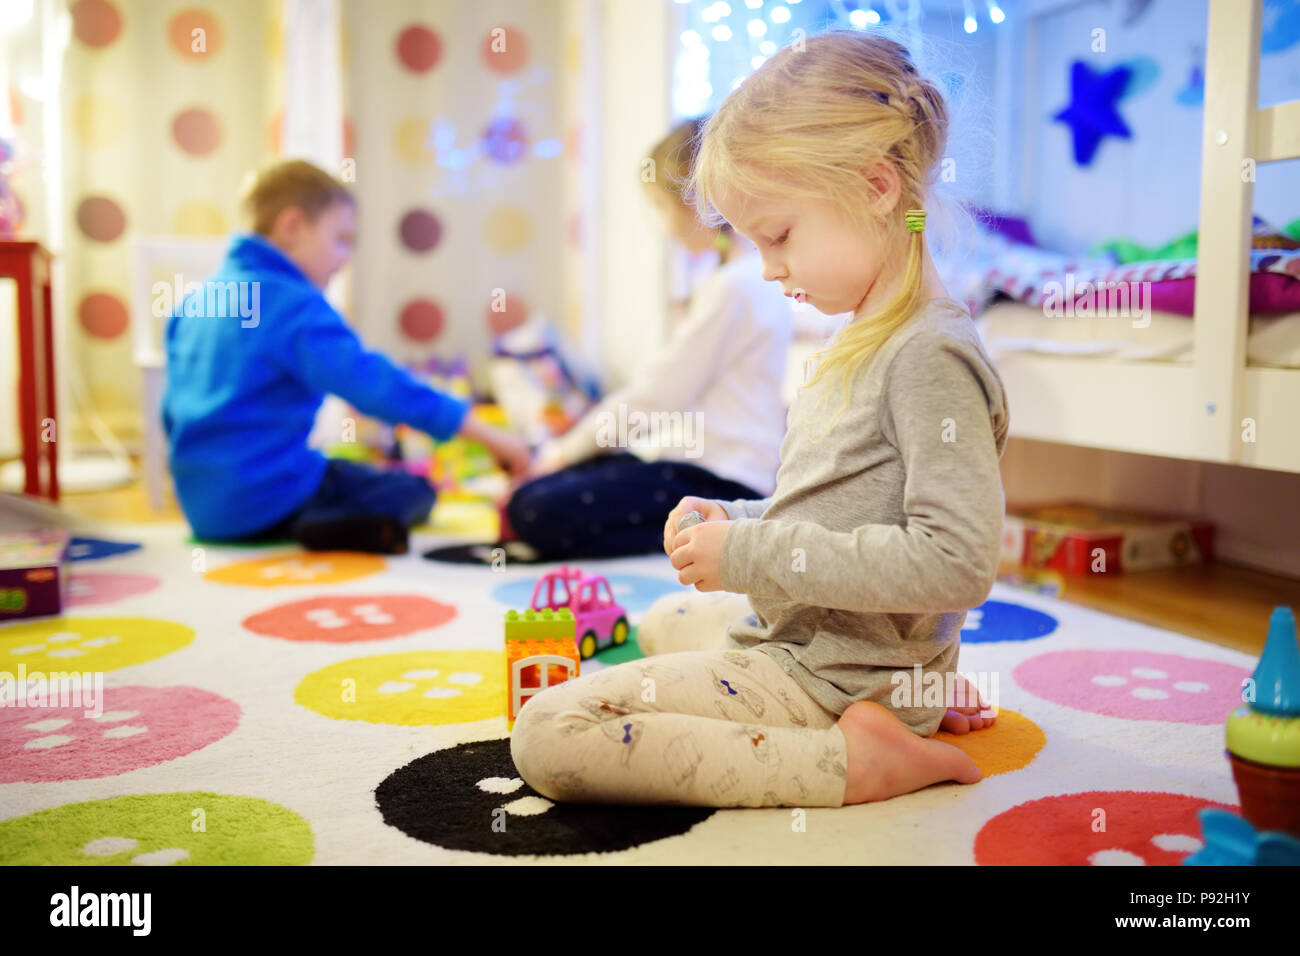 Three Children Playing With Colorful Plastic Blocks At Kids Room